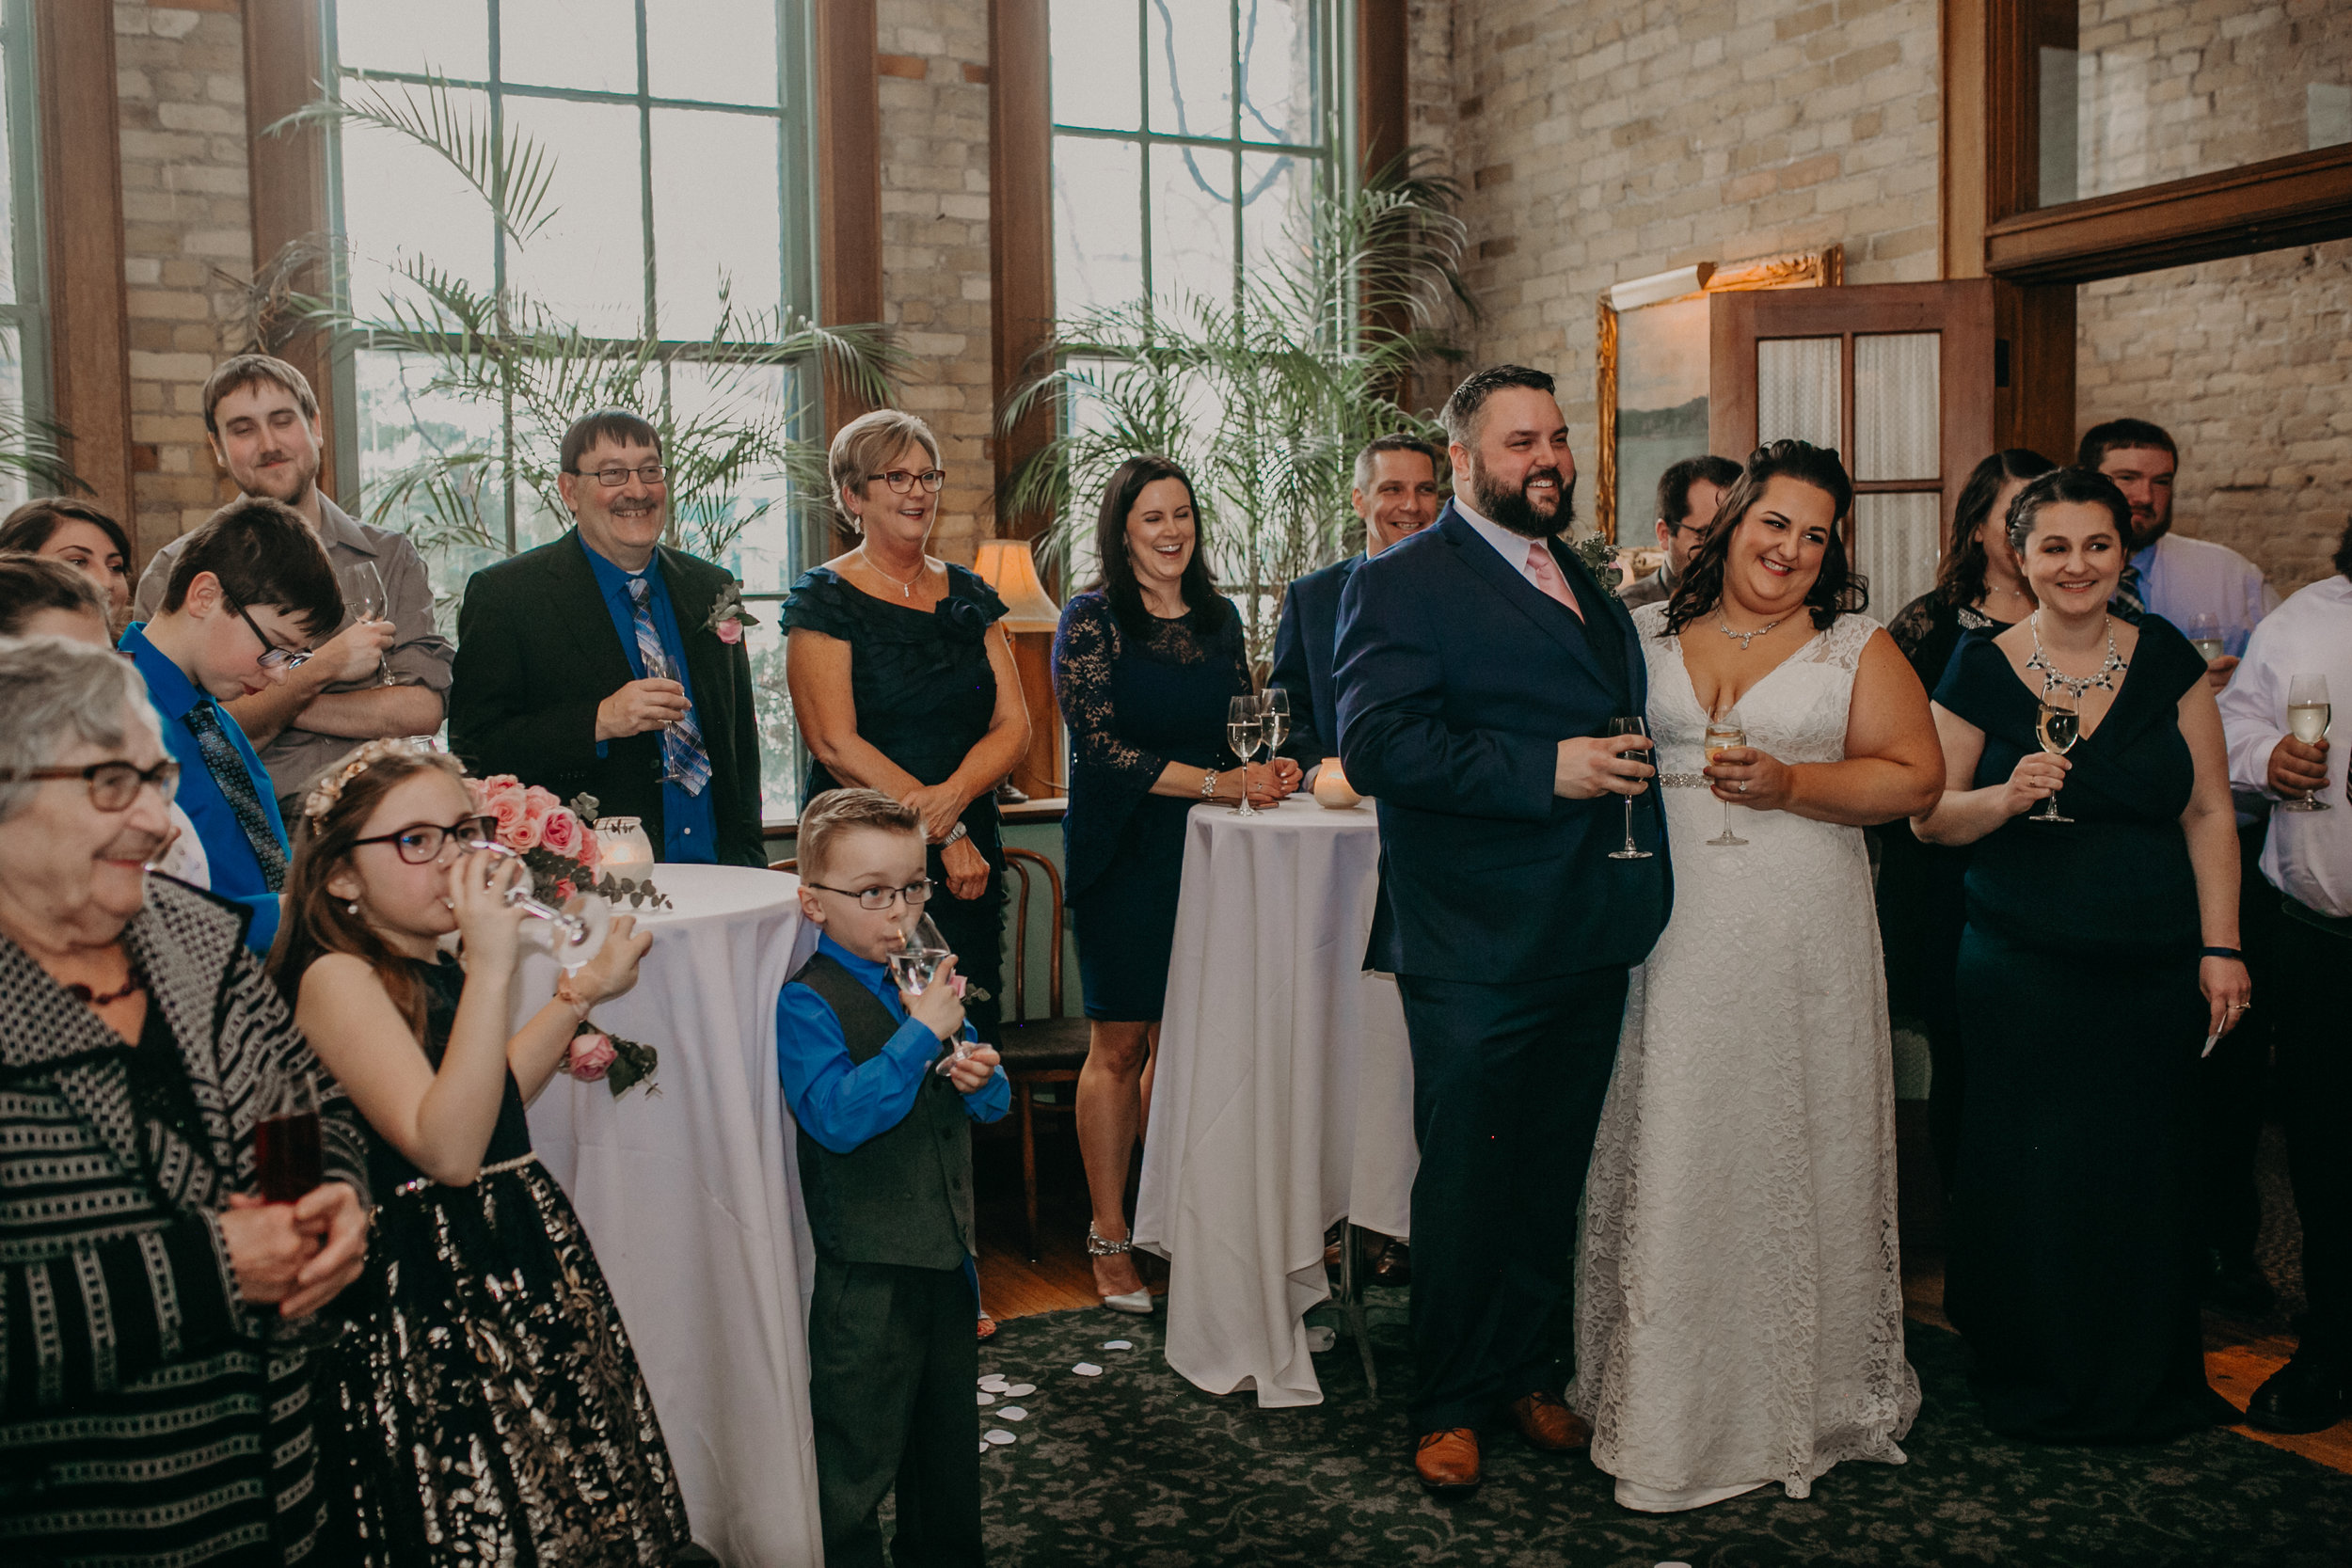 Intimate_Wedding_St_Paul_MN_WA_Frost_Sweeneys_Andrea_Wagner_Photography (60 of 99).jpg